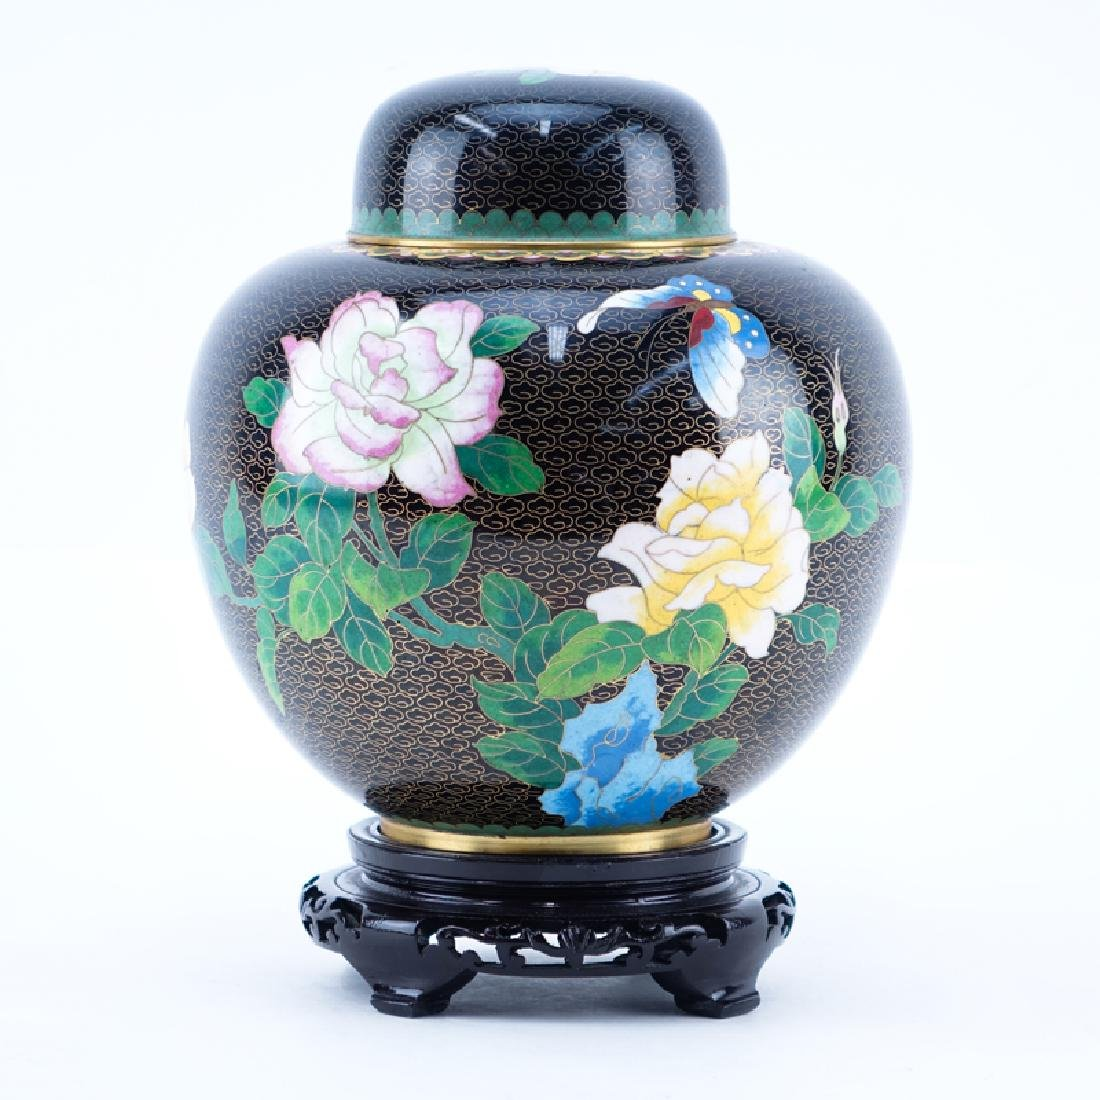 20th Century Chinese Black and Floral Cloisonné Ginger